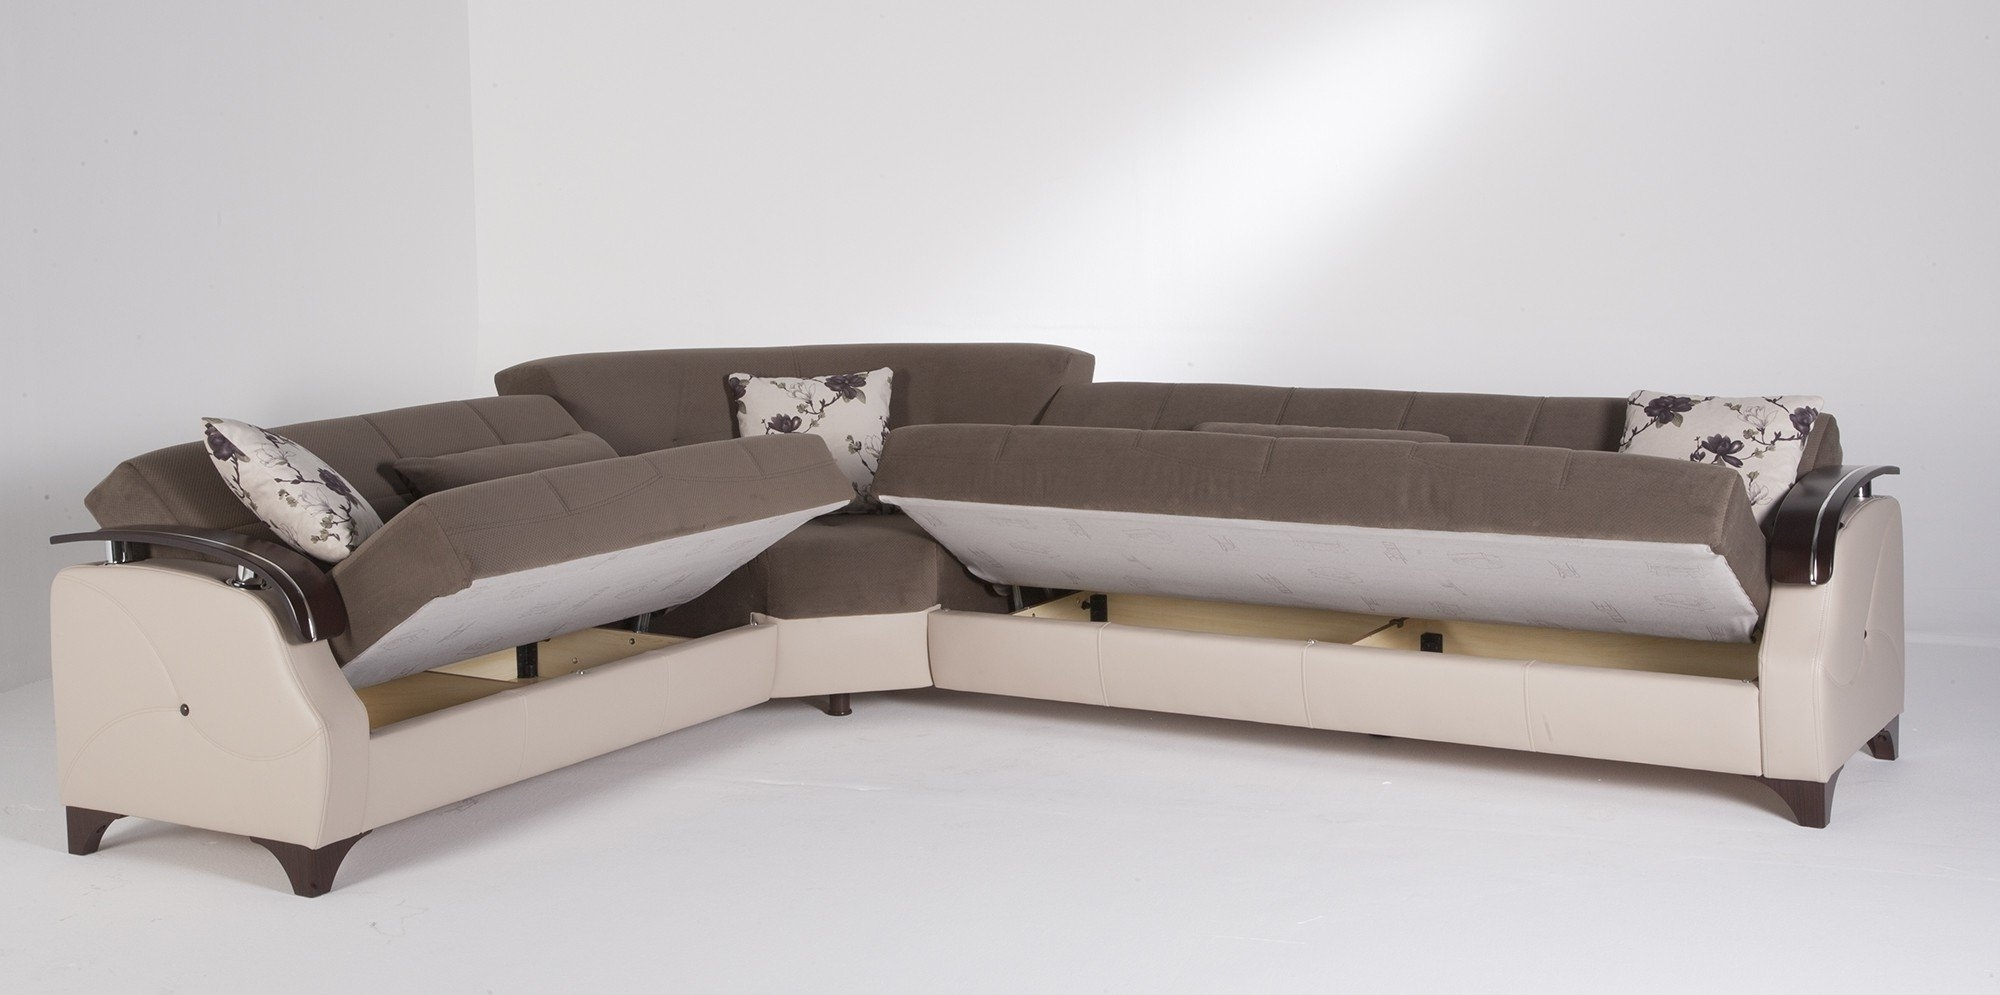 Sofas Cheap Sofa Sleepers Sleeper Sectional Sofa Comfortable With With Regard To Widely Used Sleeper Sectional Sofas (View 15 of 20)